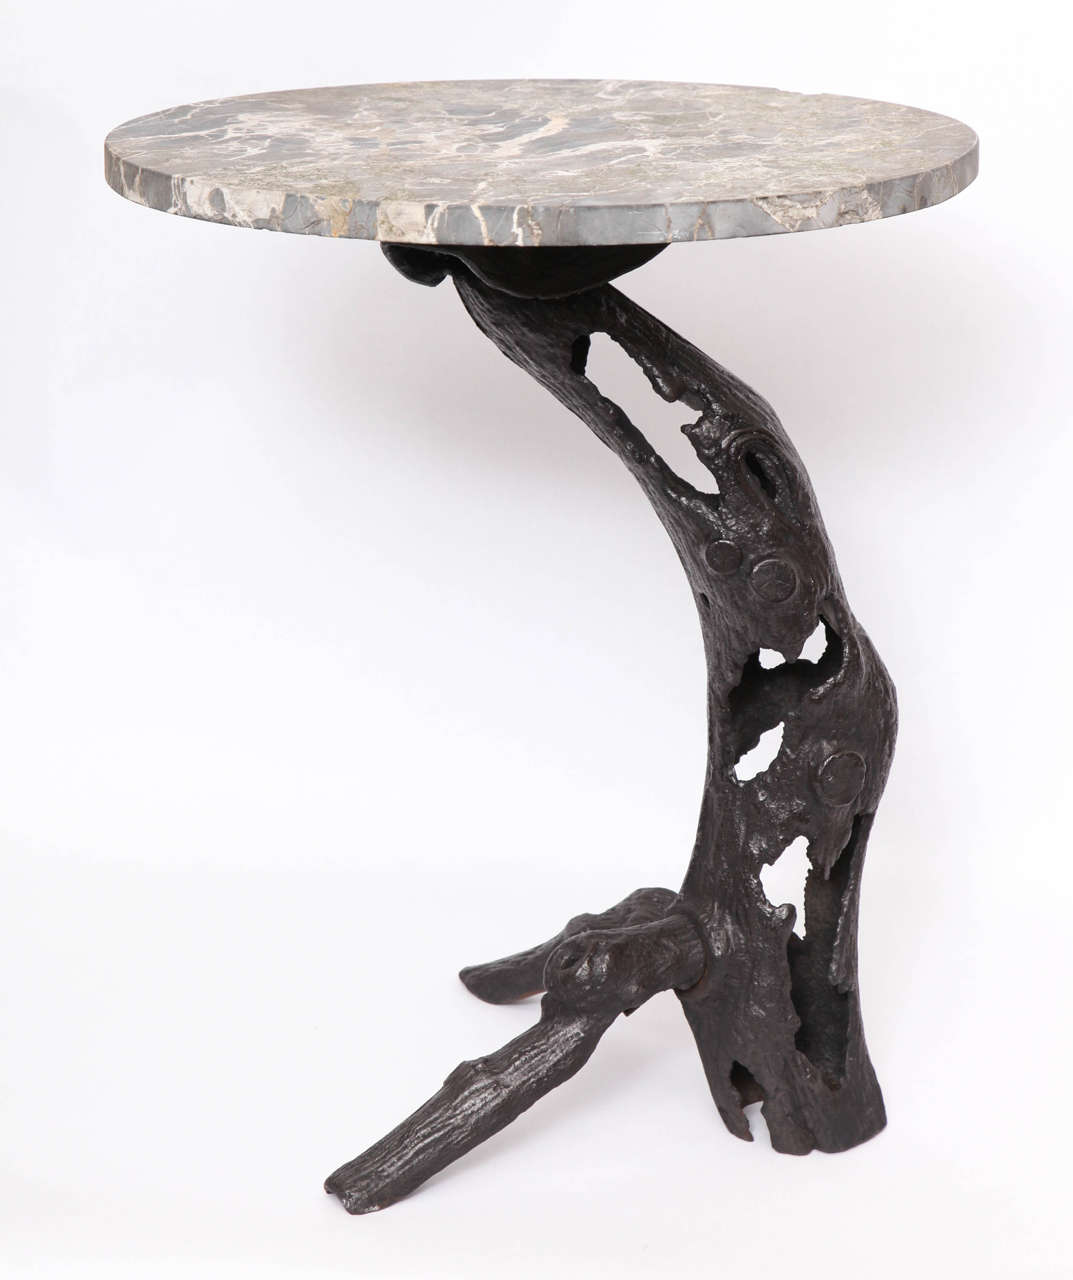 A 1920s sculptural patinated iron and marble table.